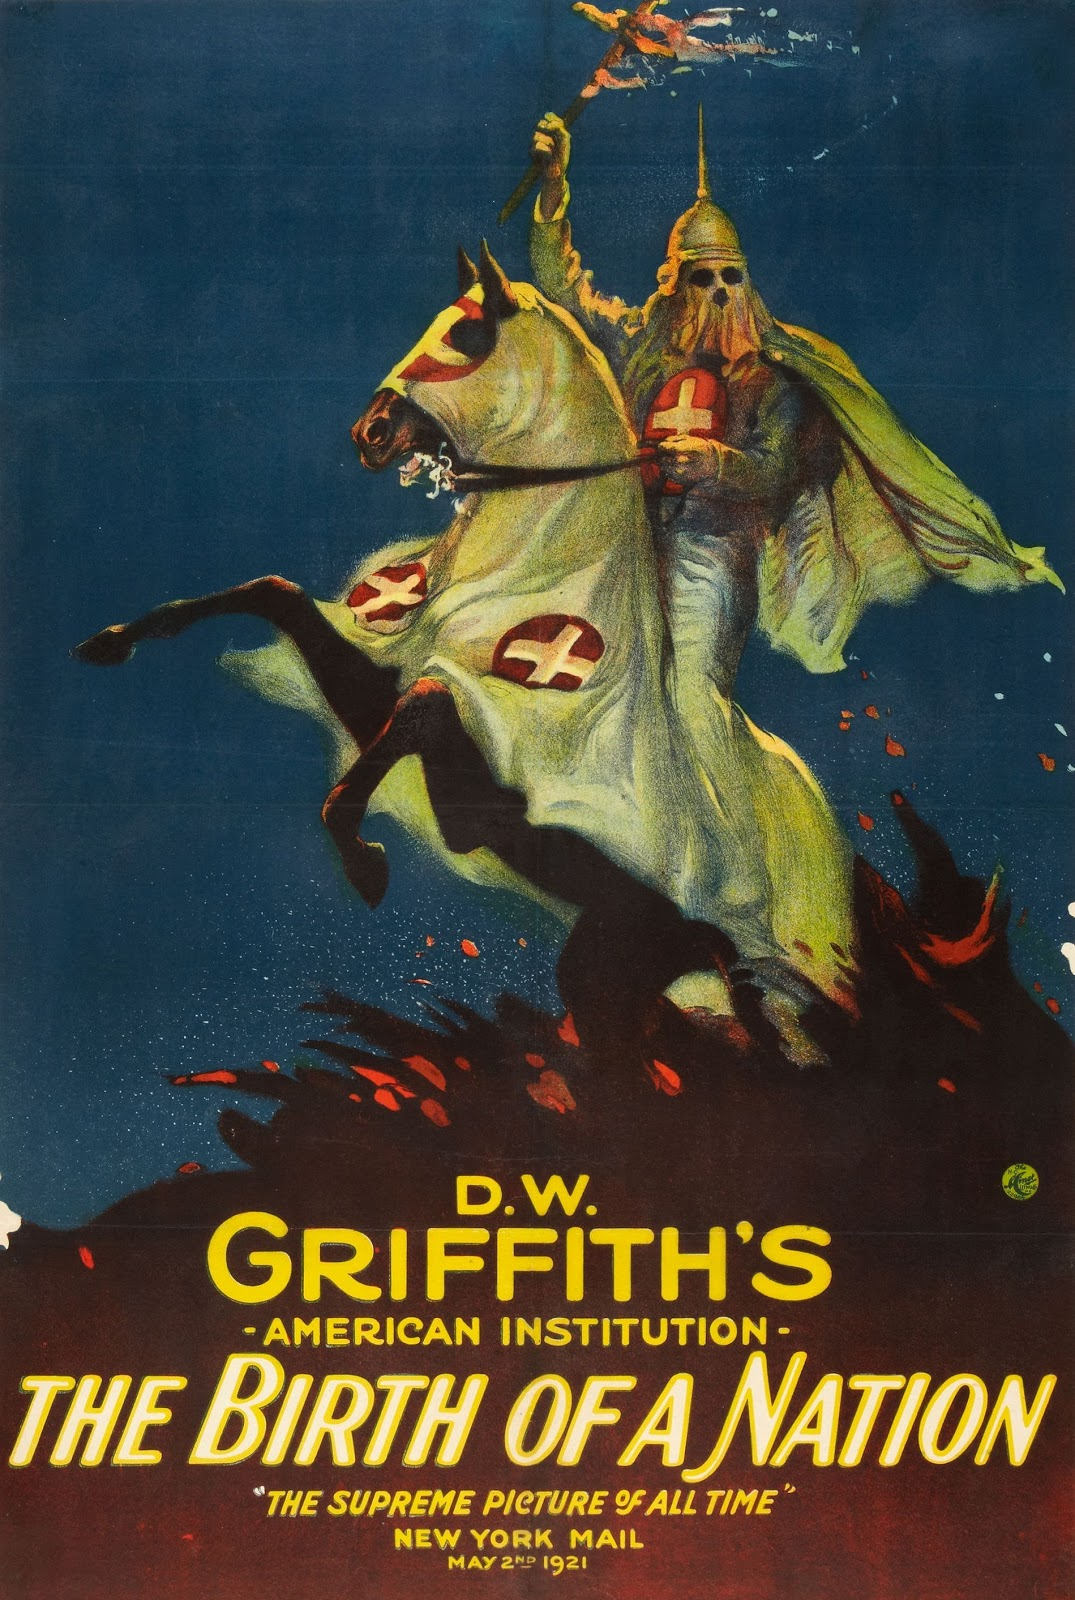 Ku Klux Klan member on horseback featured on a poster for the film The Birth of a Nation.